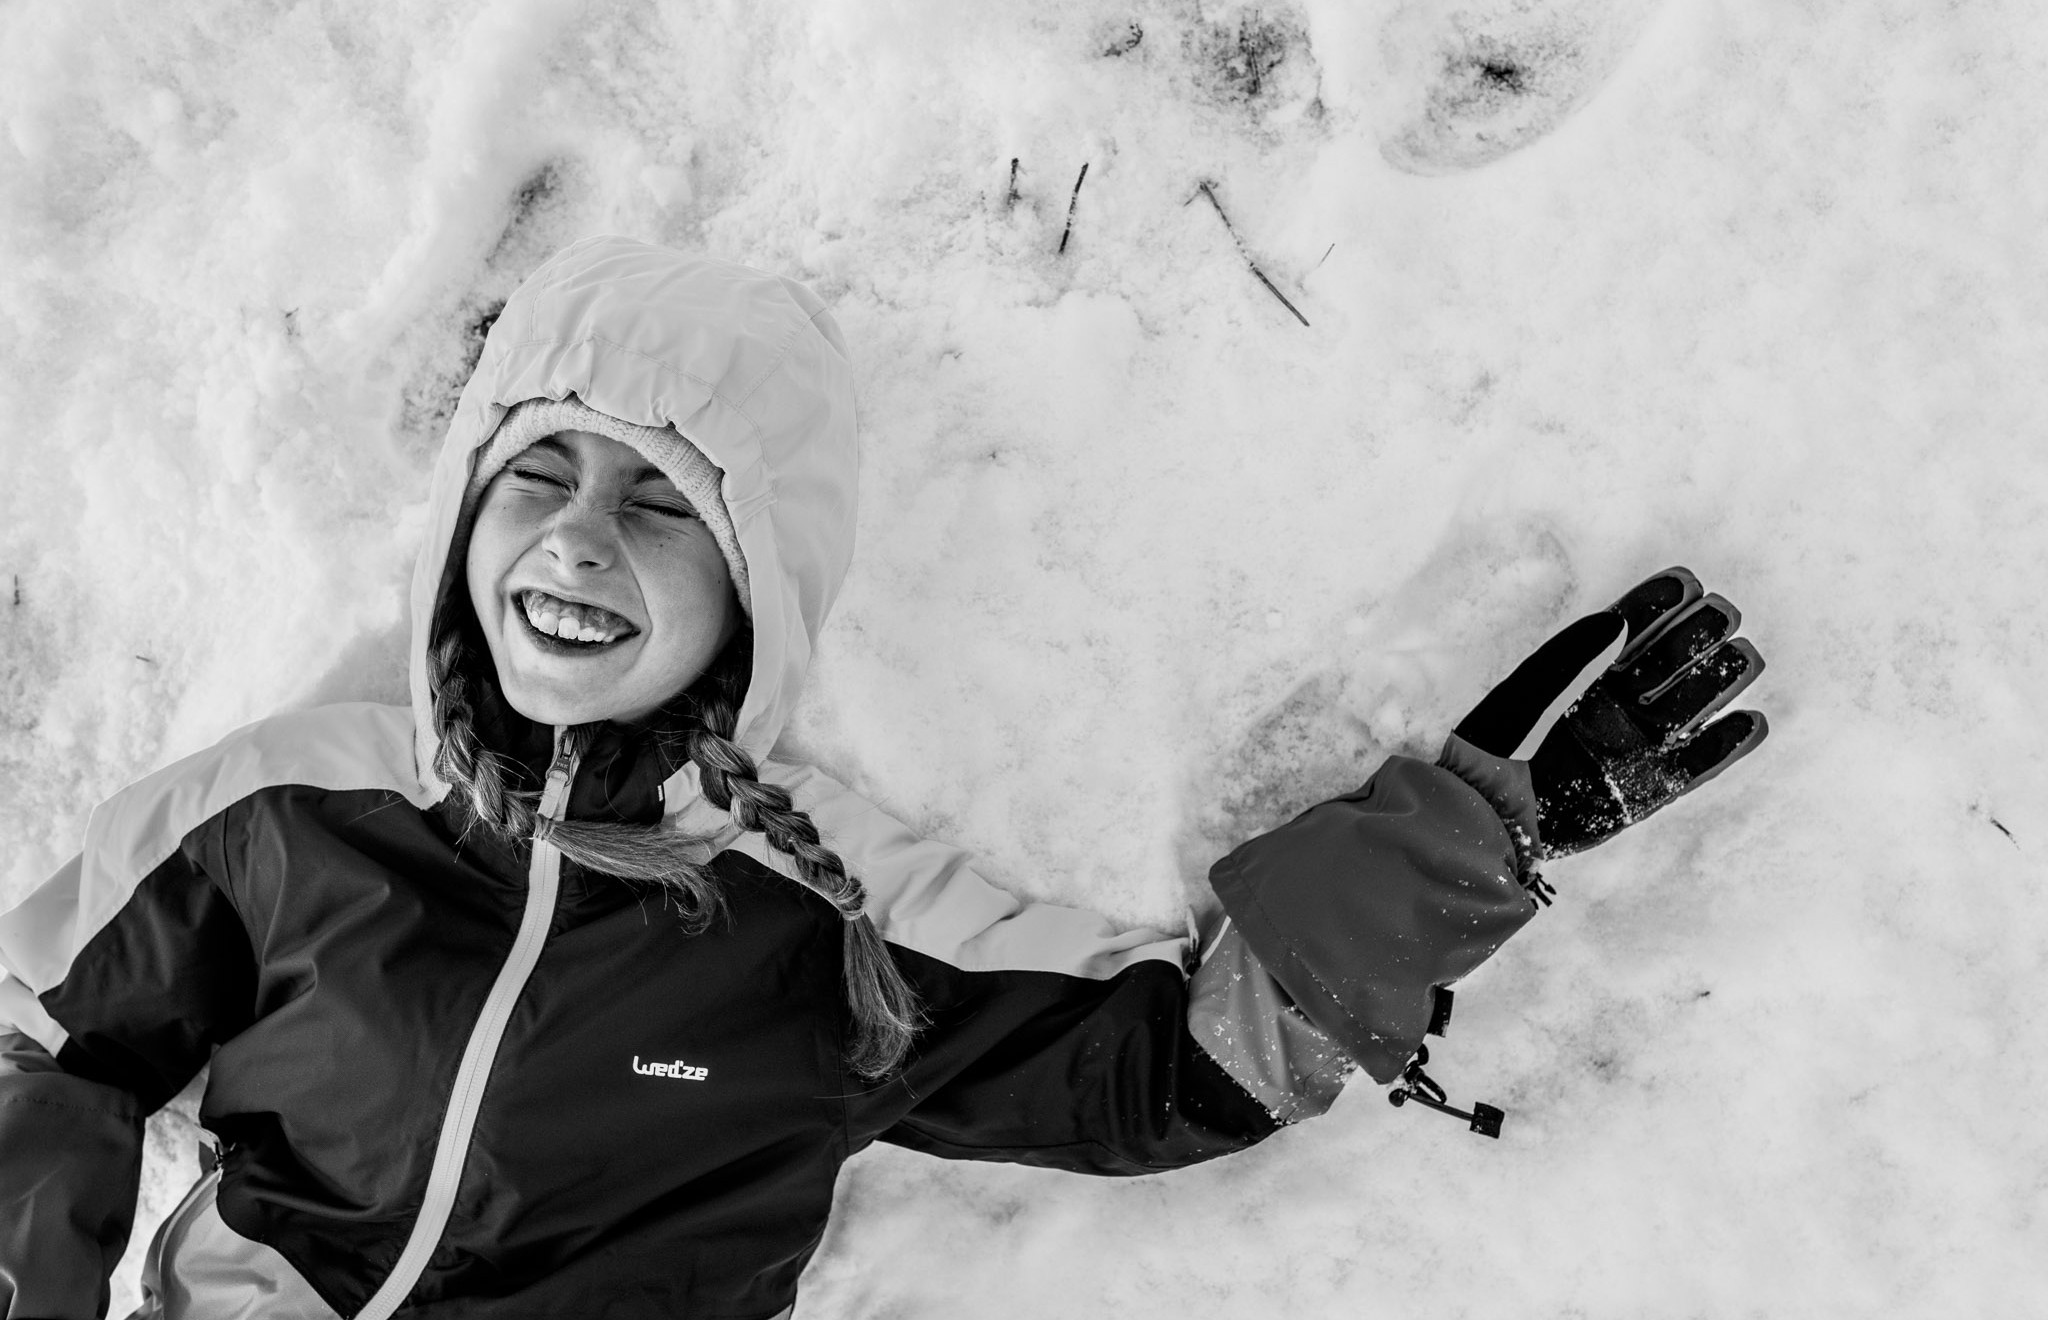 girl smiles happily in the snow after sledding